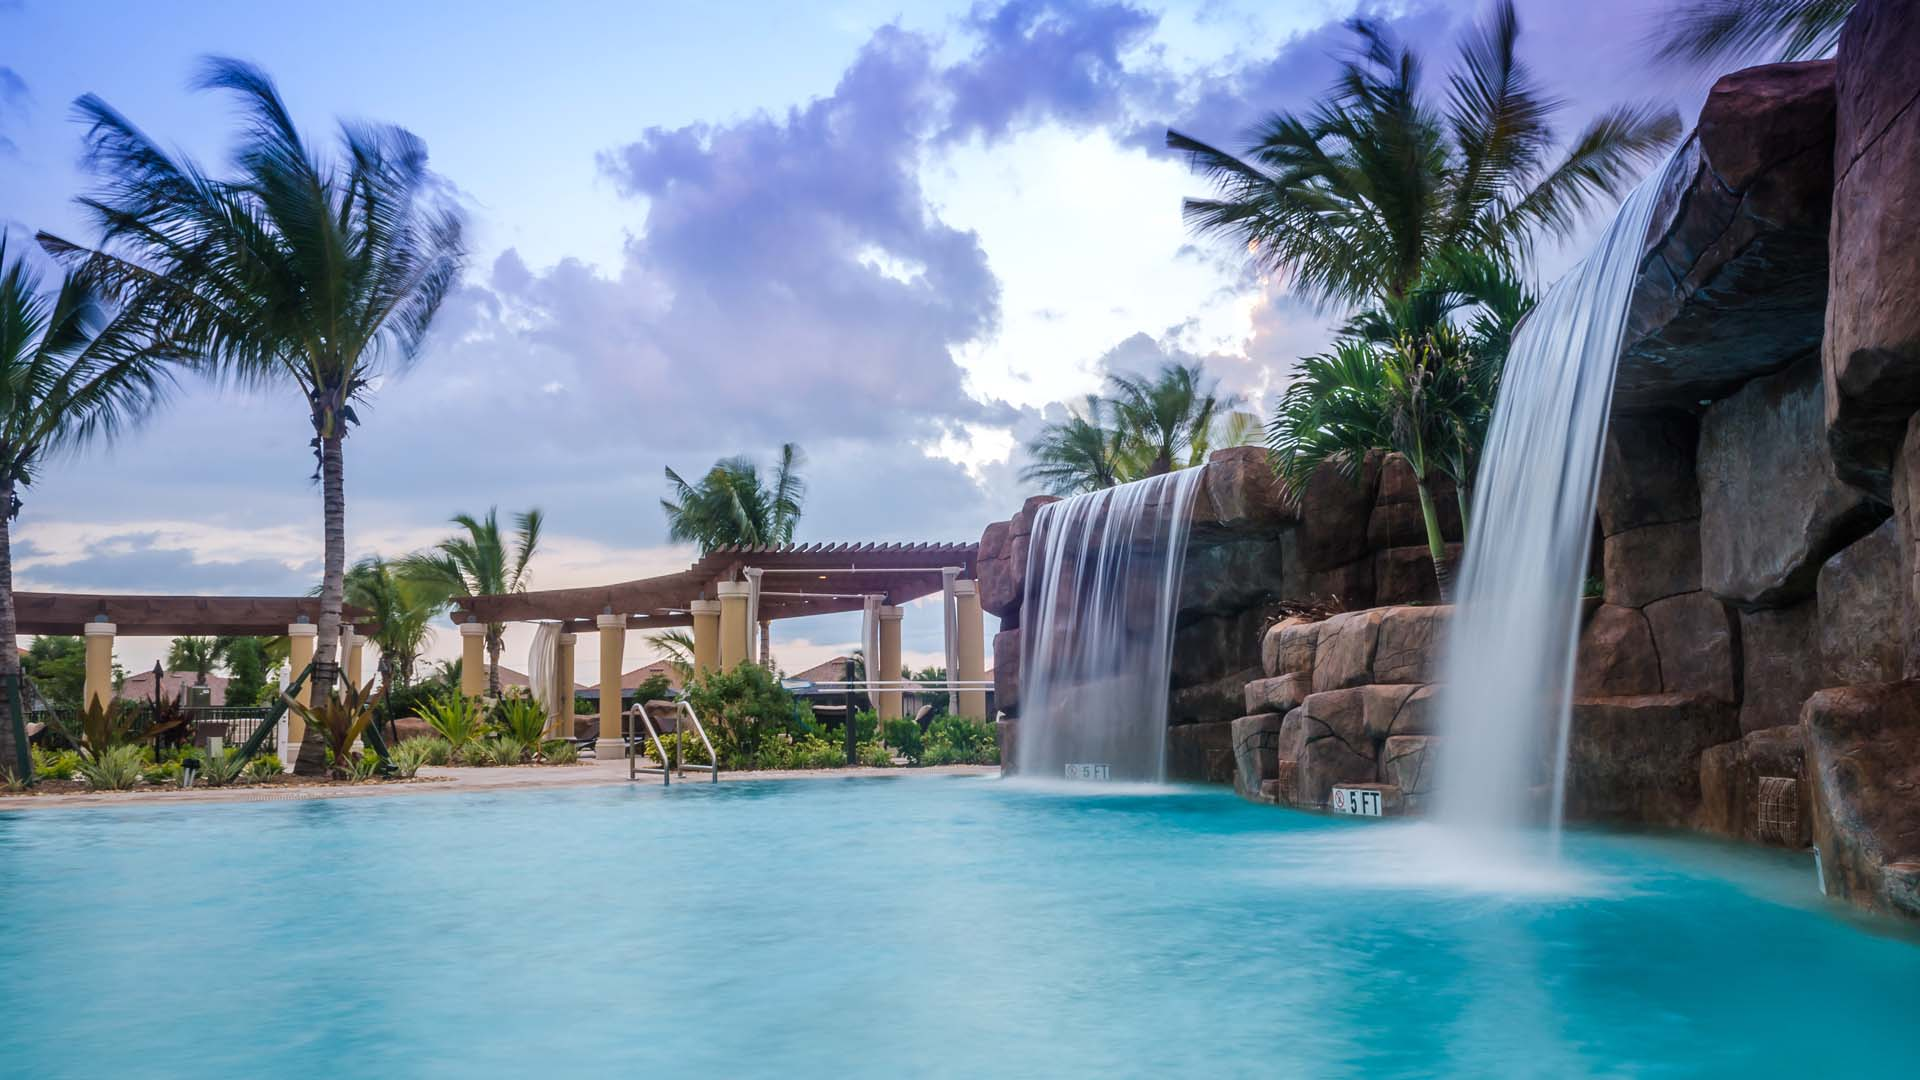 Amazing Resort-Style Pool Waterfalls at Treviso Bay